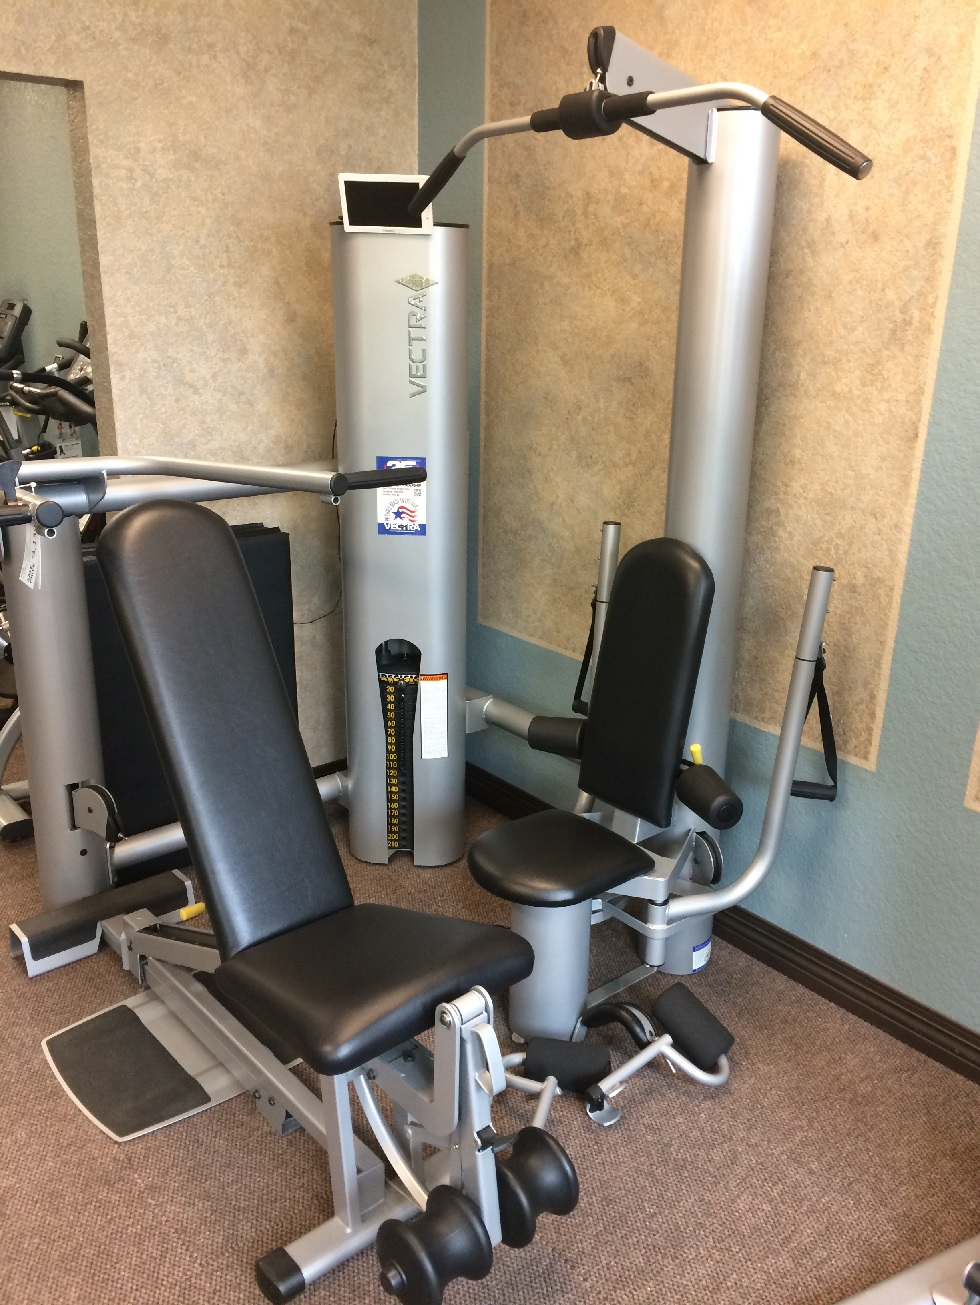 Vectra 1450 Multigym Image